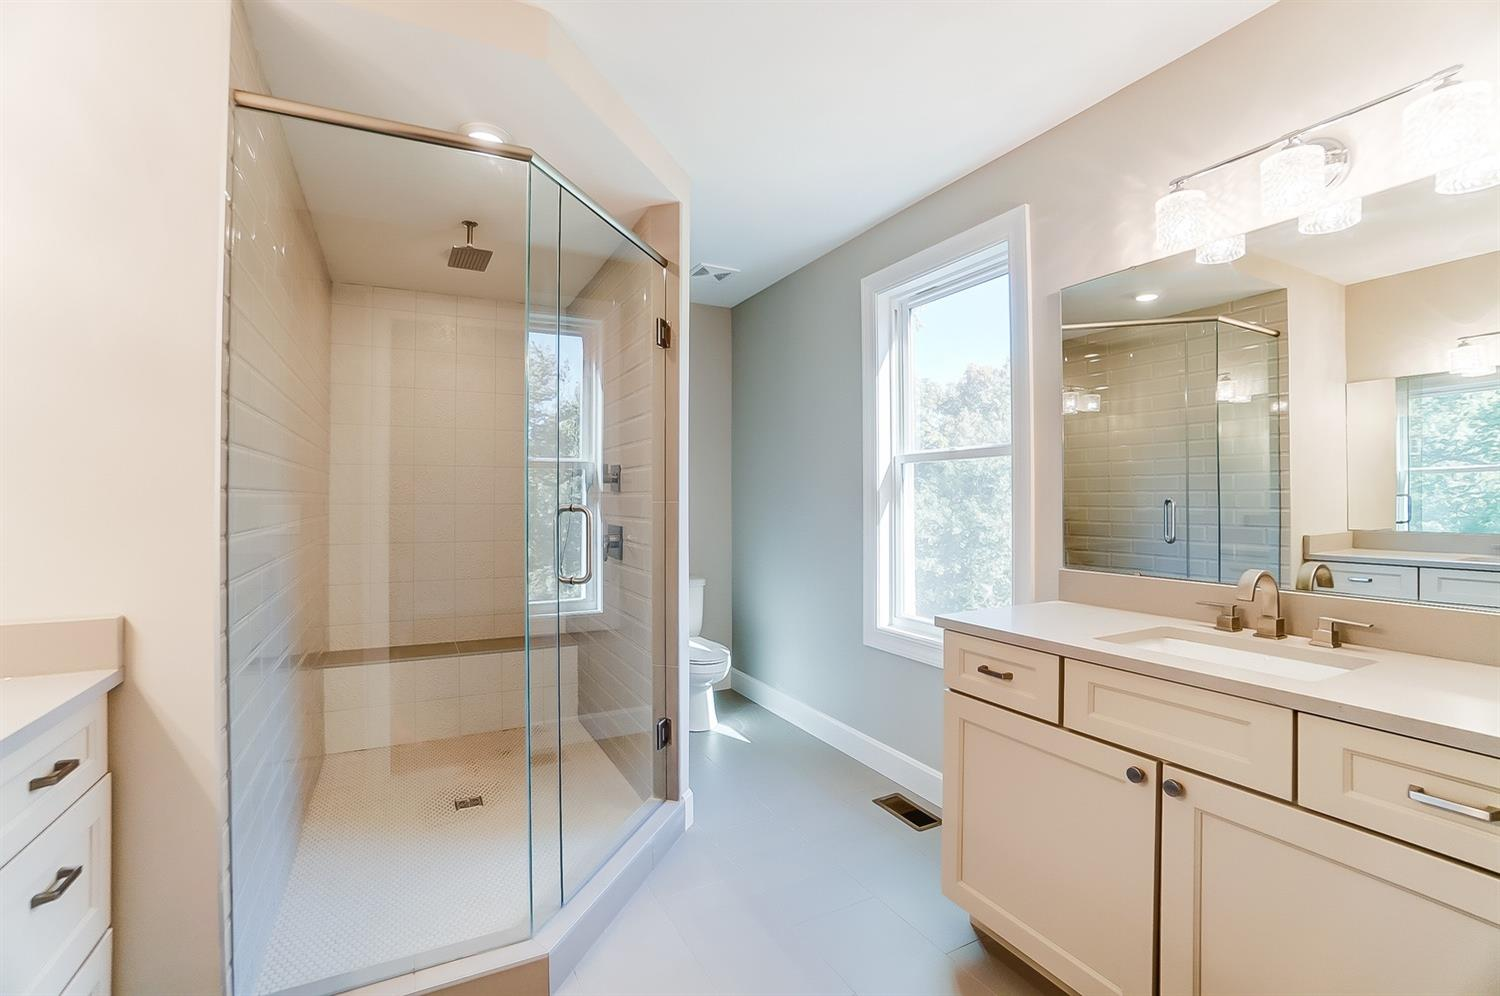 2nd floor, owner's bath is light and airy! Gleaming surfaces, warm cream, white and dove gray color scheme.